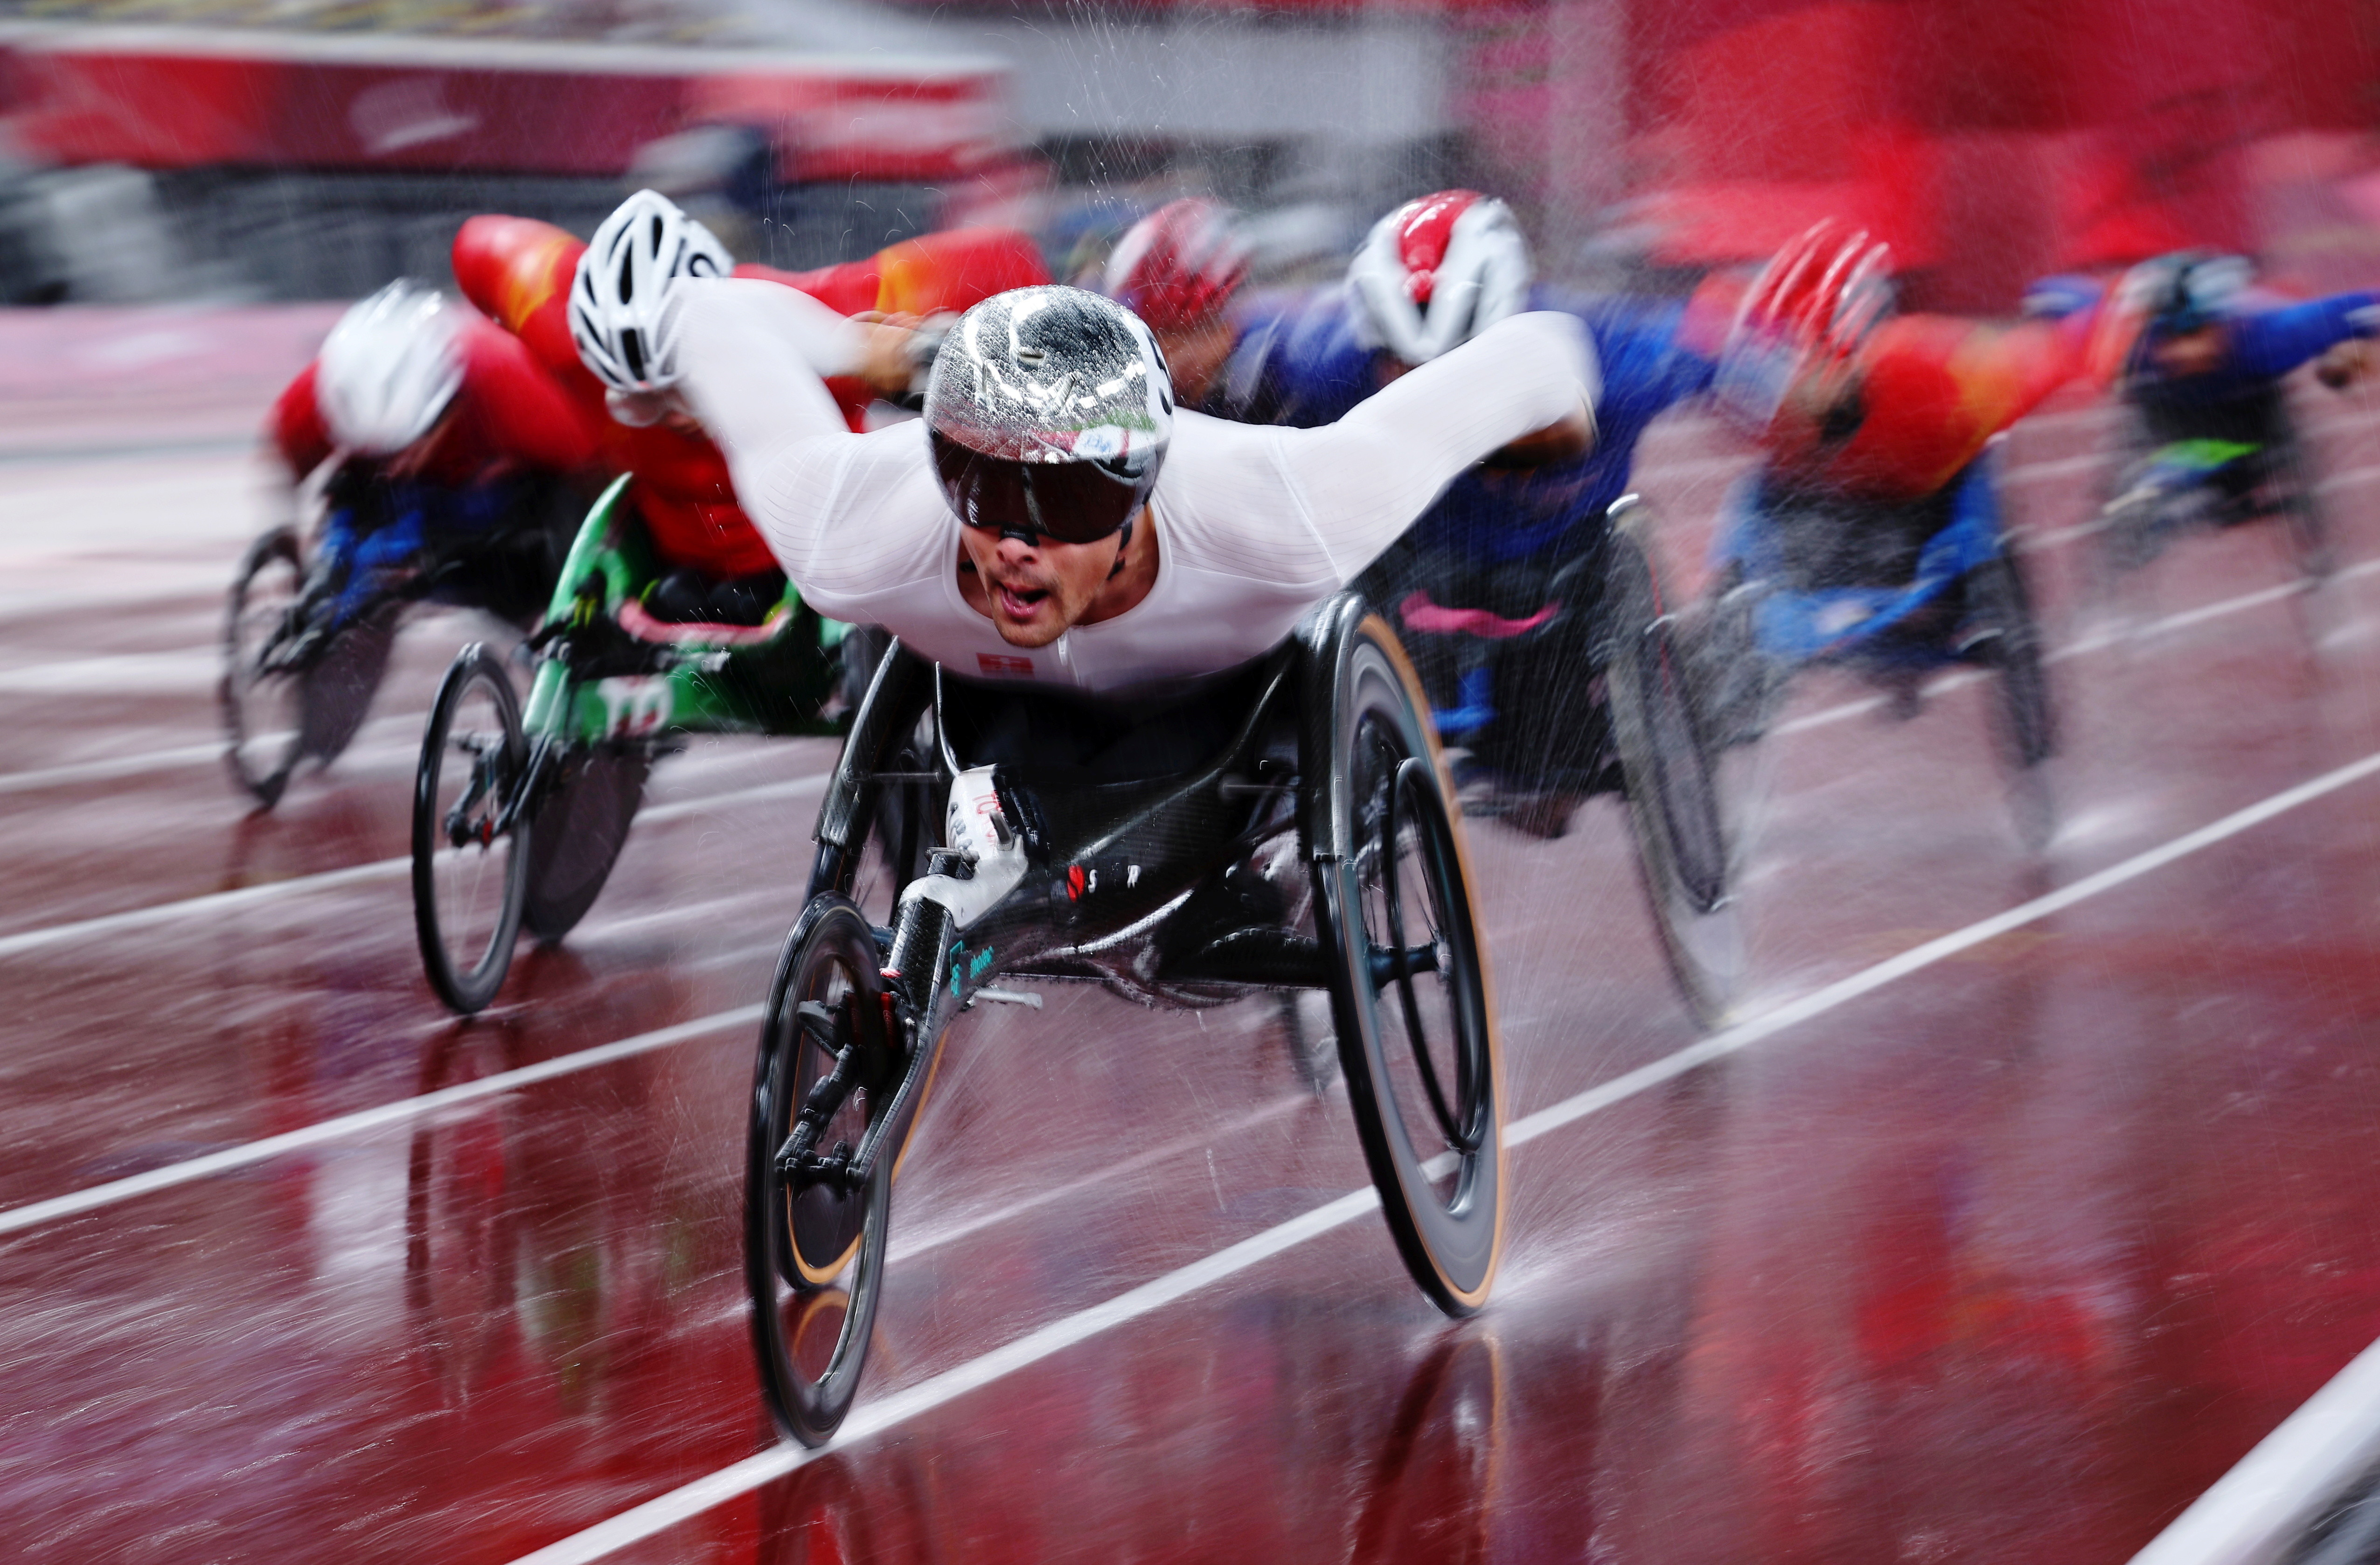 athletes compete at the Tokyo 2020 Paralympic Games in wheelchairs